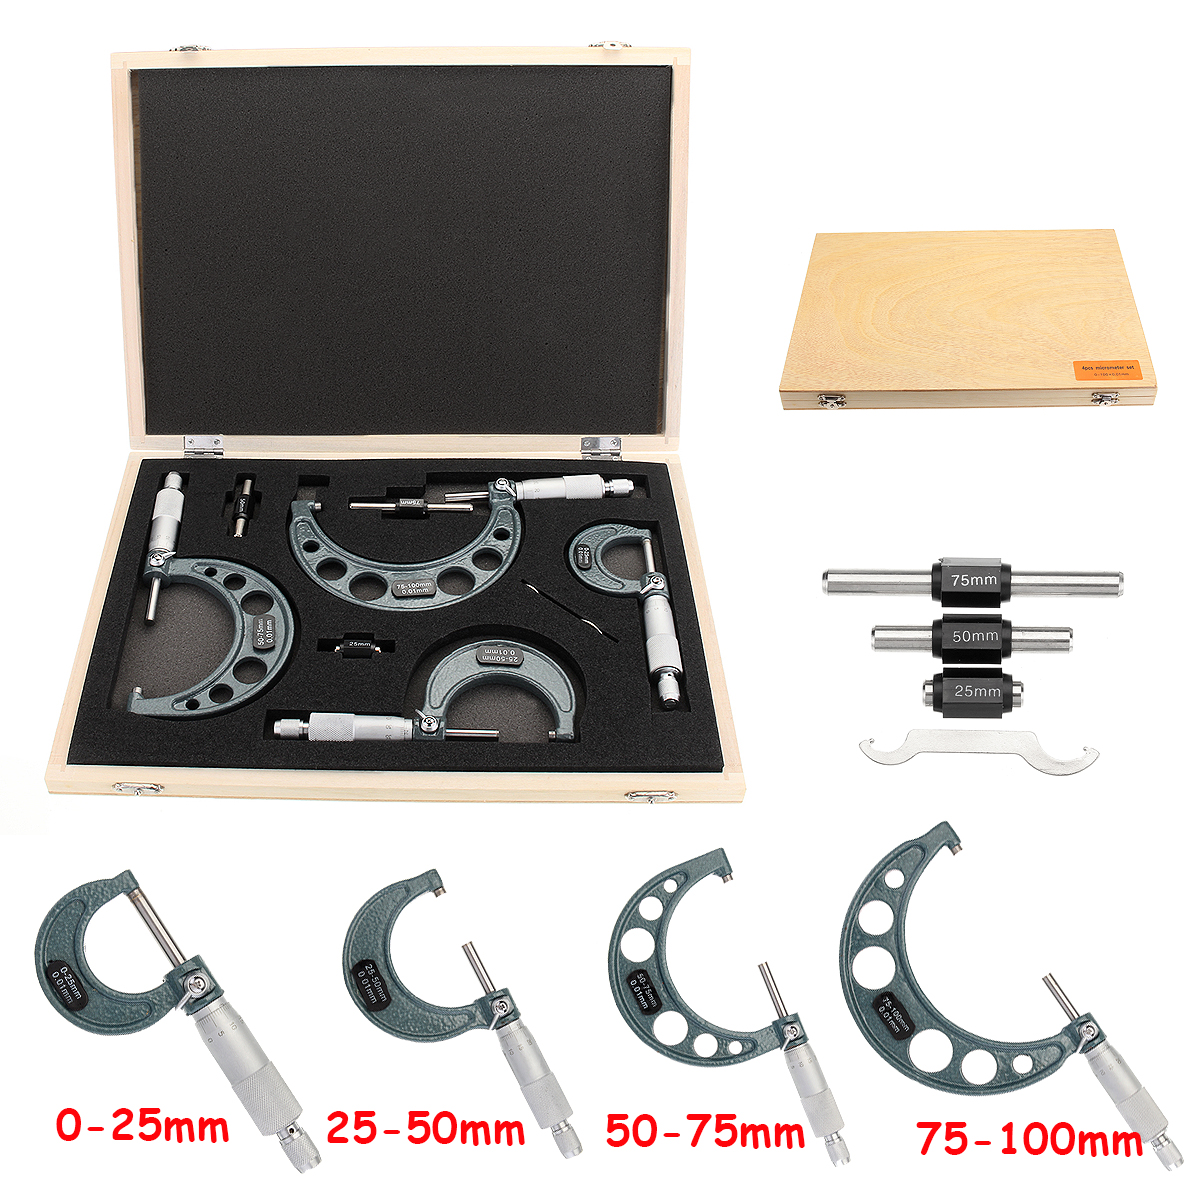 4PC Micrometer Set 0-100mm Metric External Analogue Caliper Precision Measuring